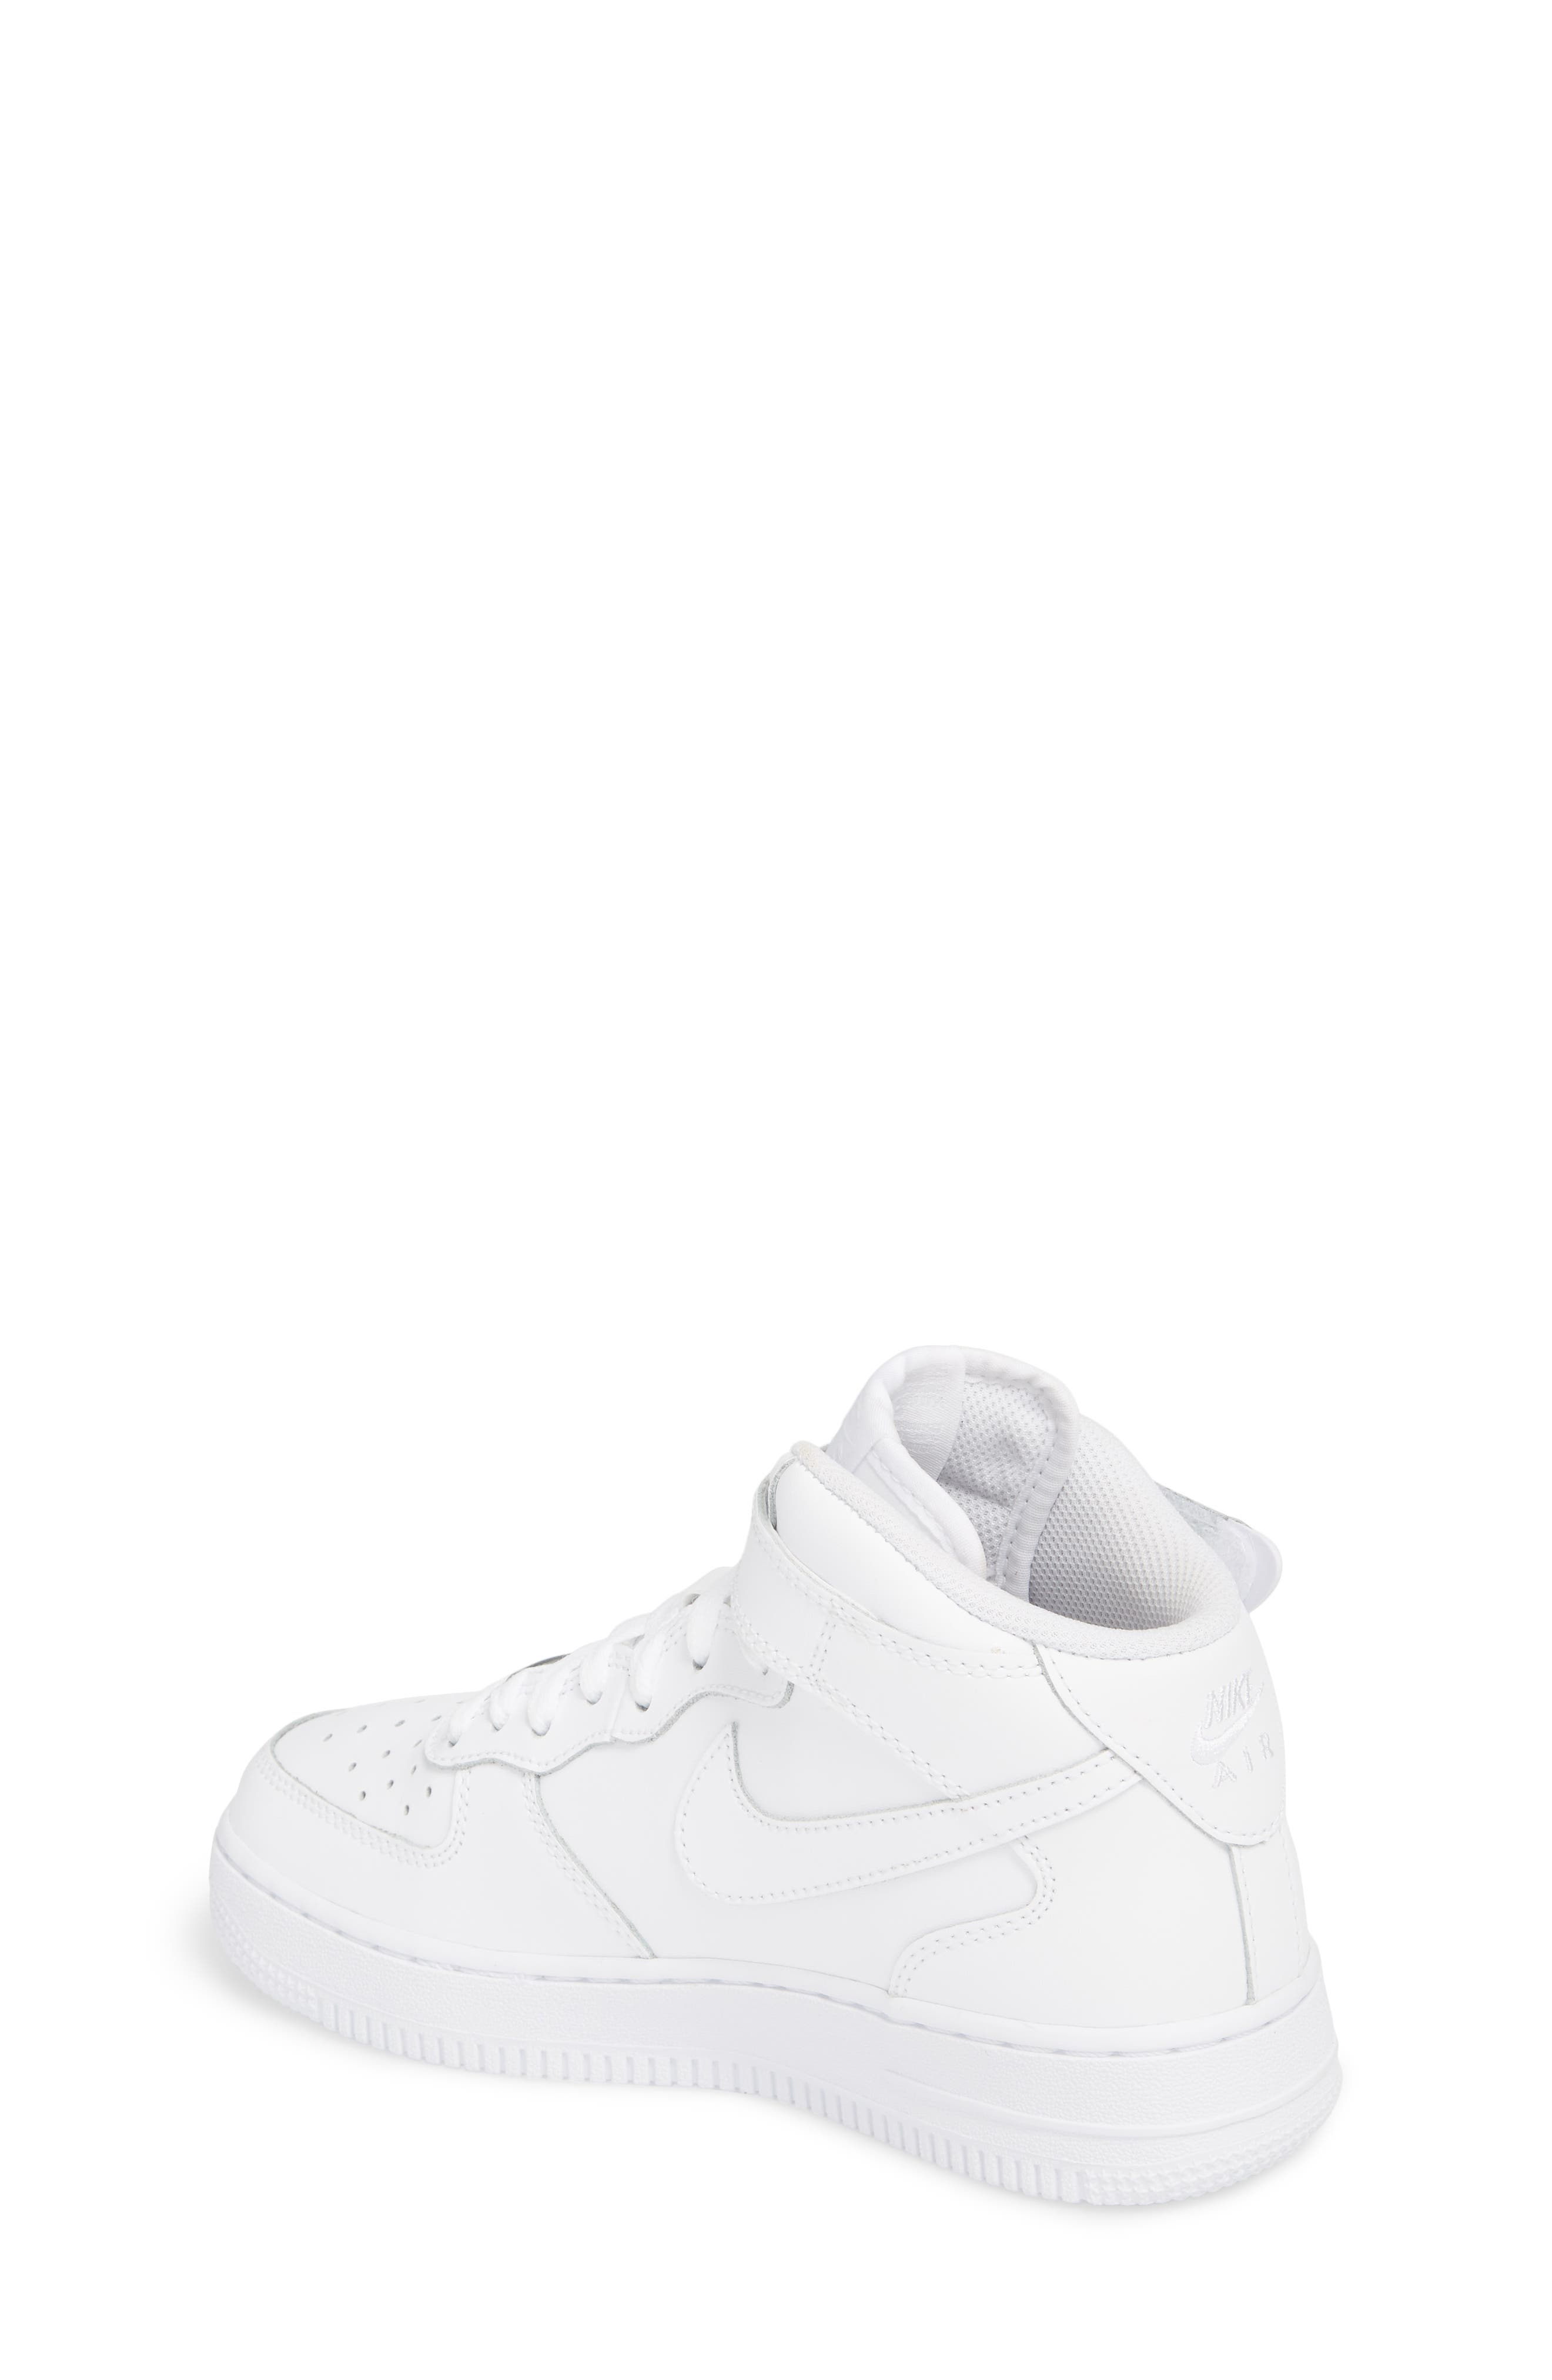 Air Force 1 Mid Top Sneaker,                             Alternate thumbnail 2, color,                             WHITE